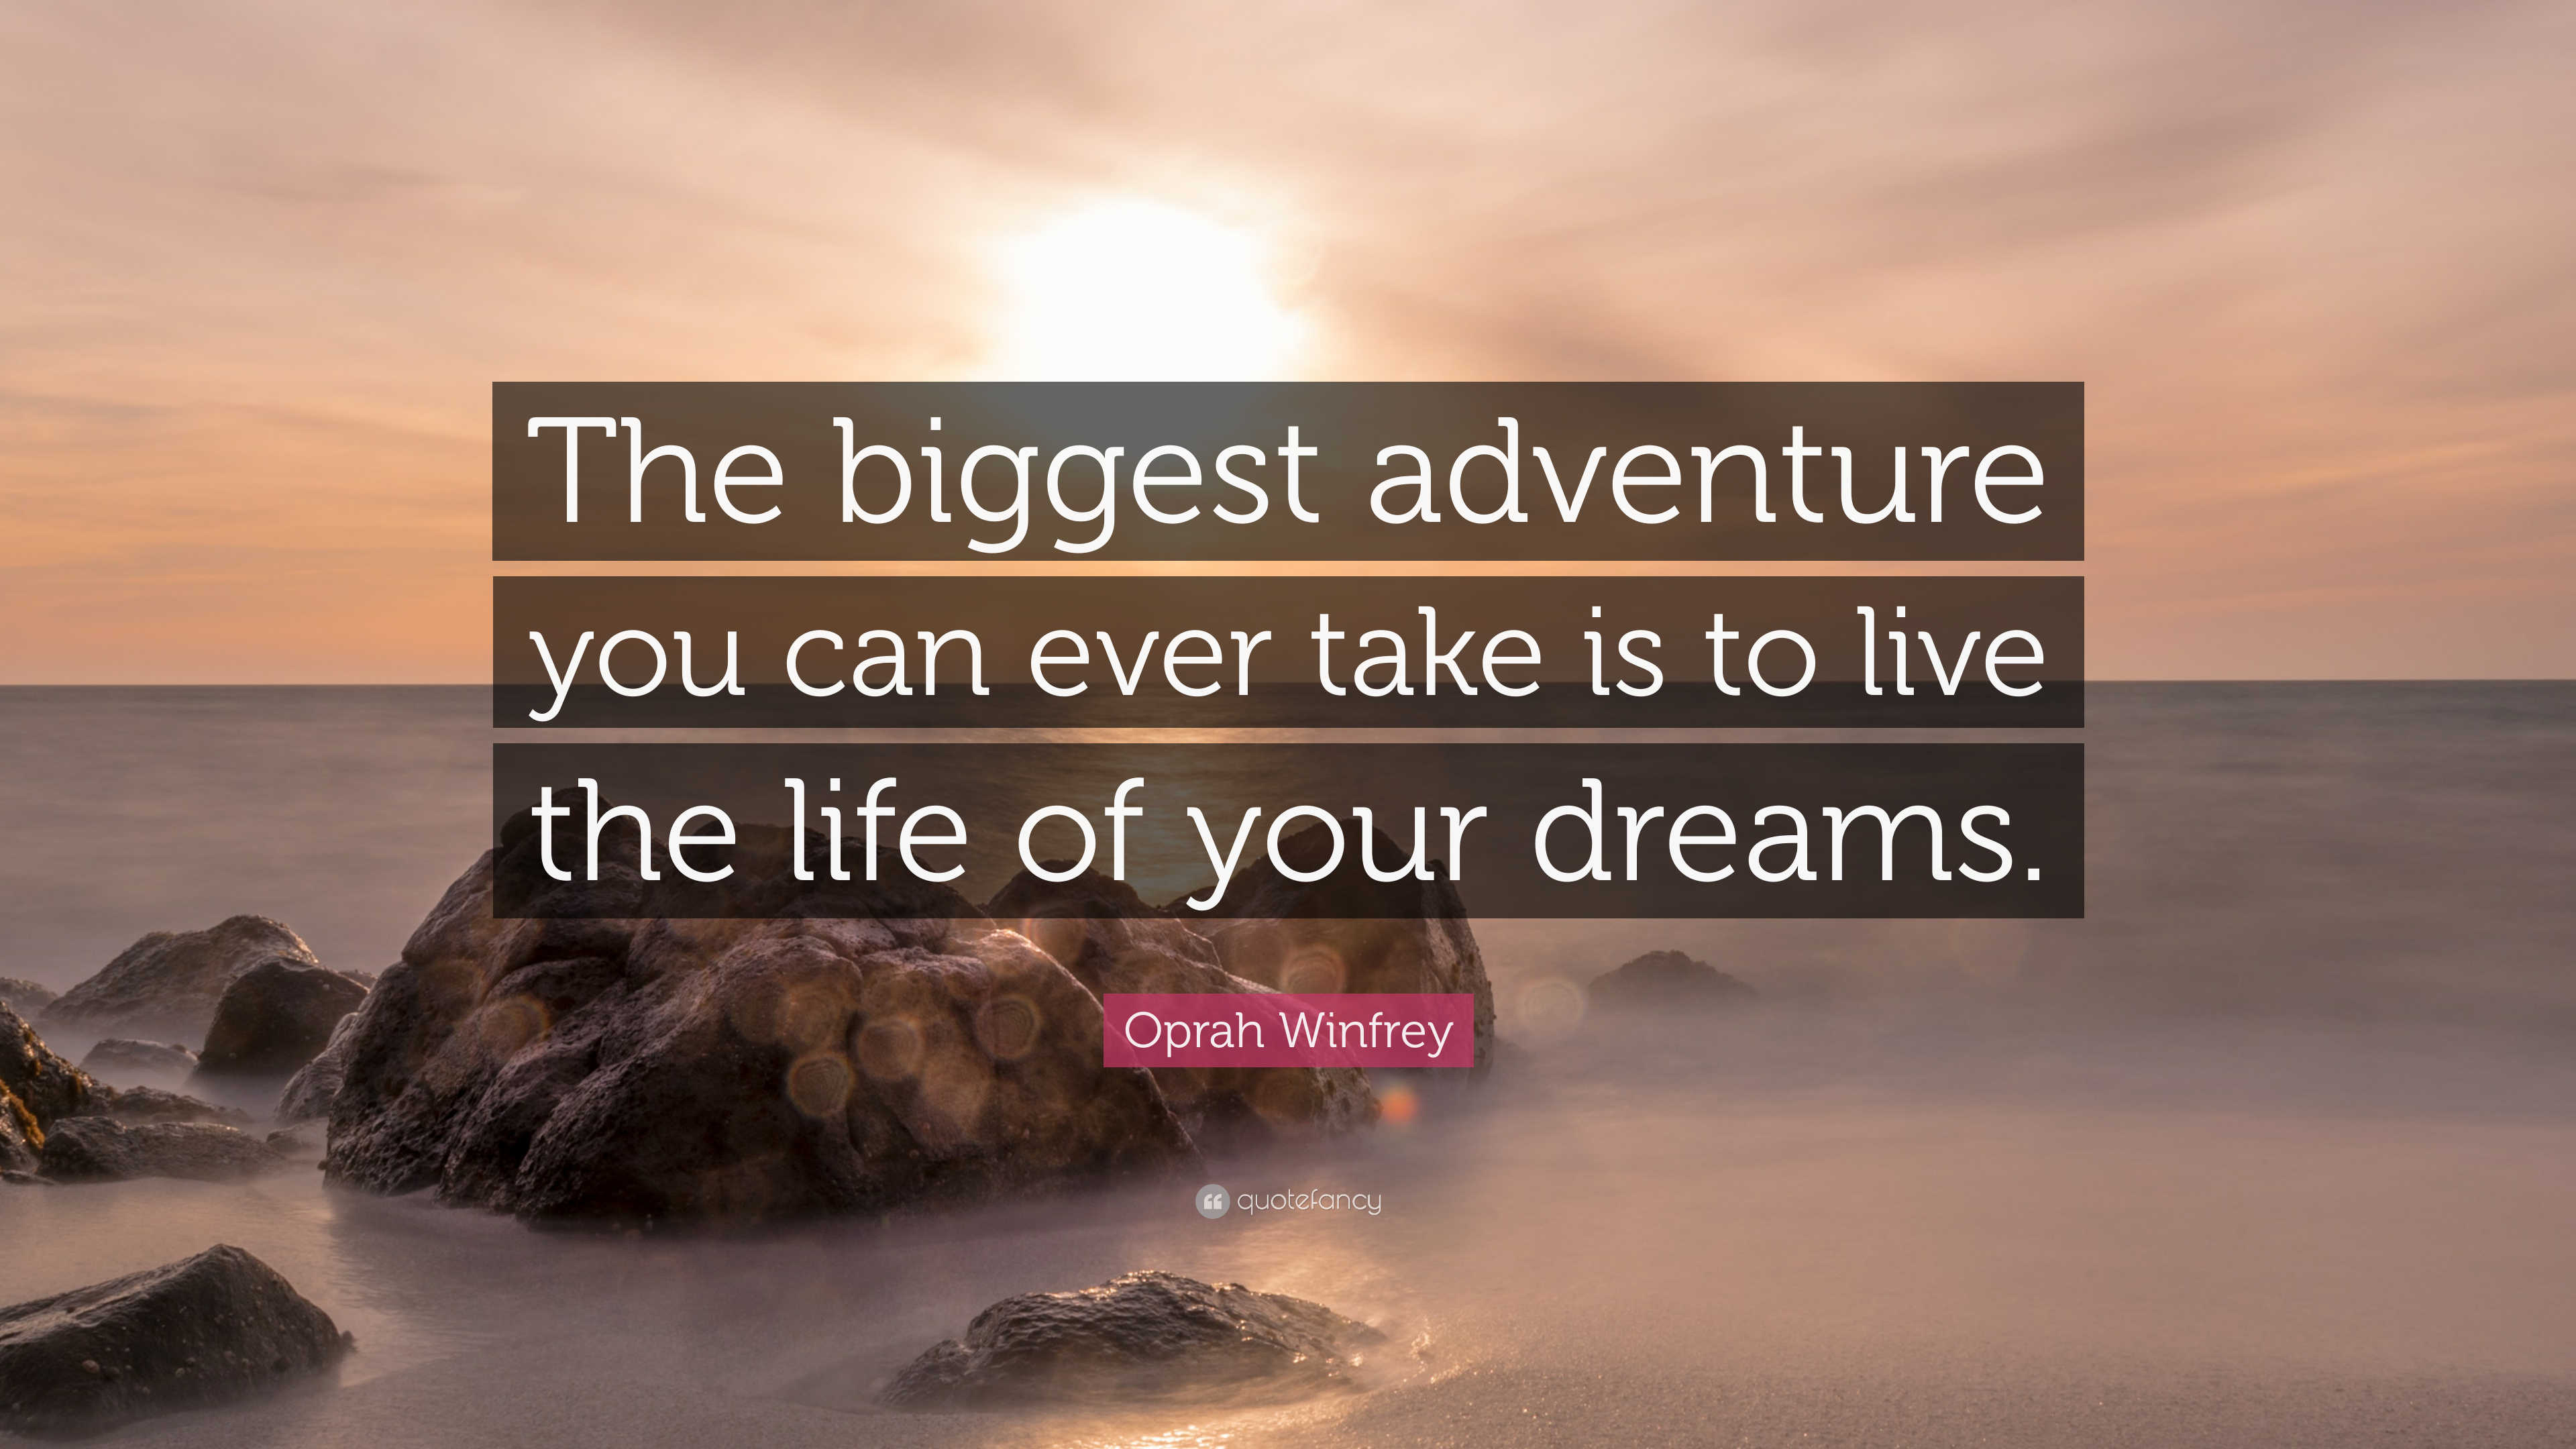 6361122-Oprah-Winfrey-Quote-The-biggest-adventure-you-can-ever-take-is-to.jpg